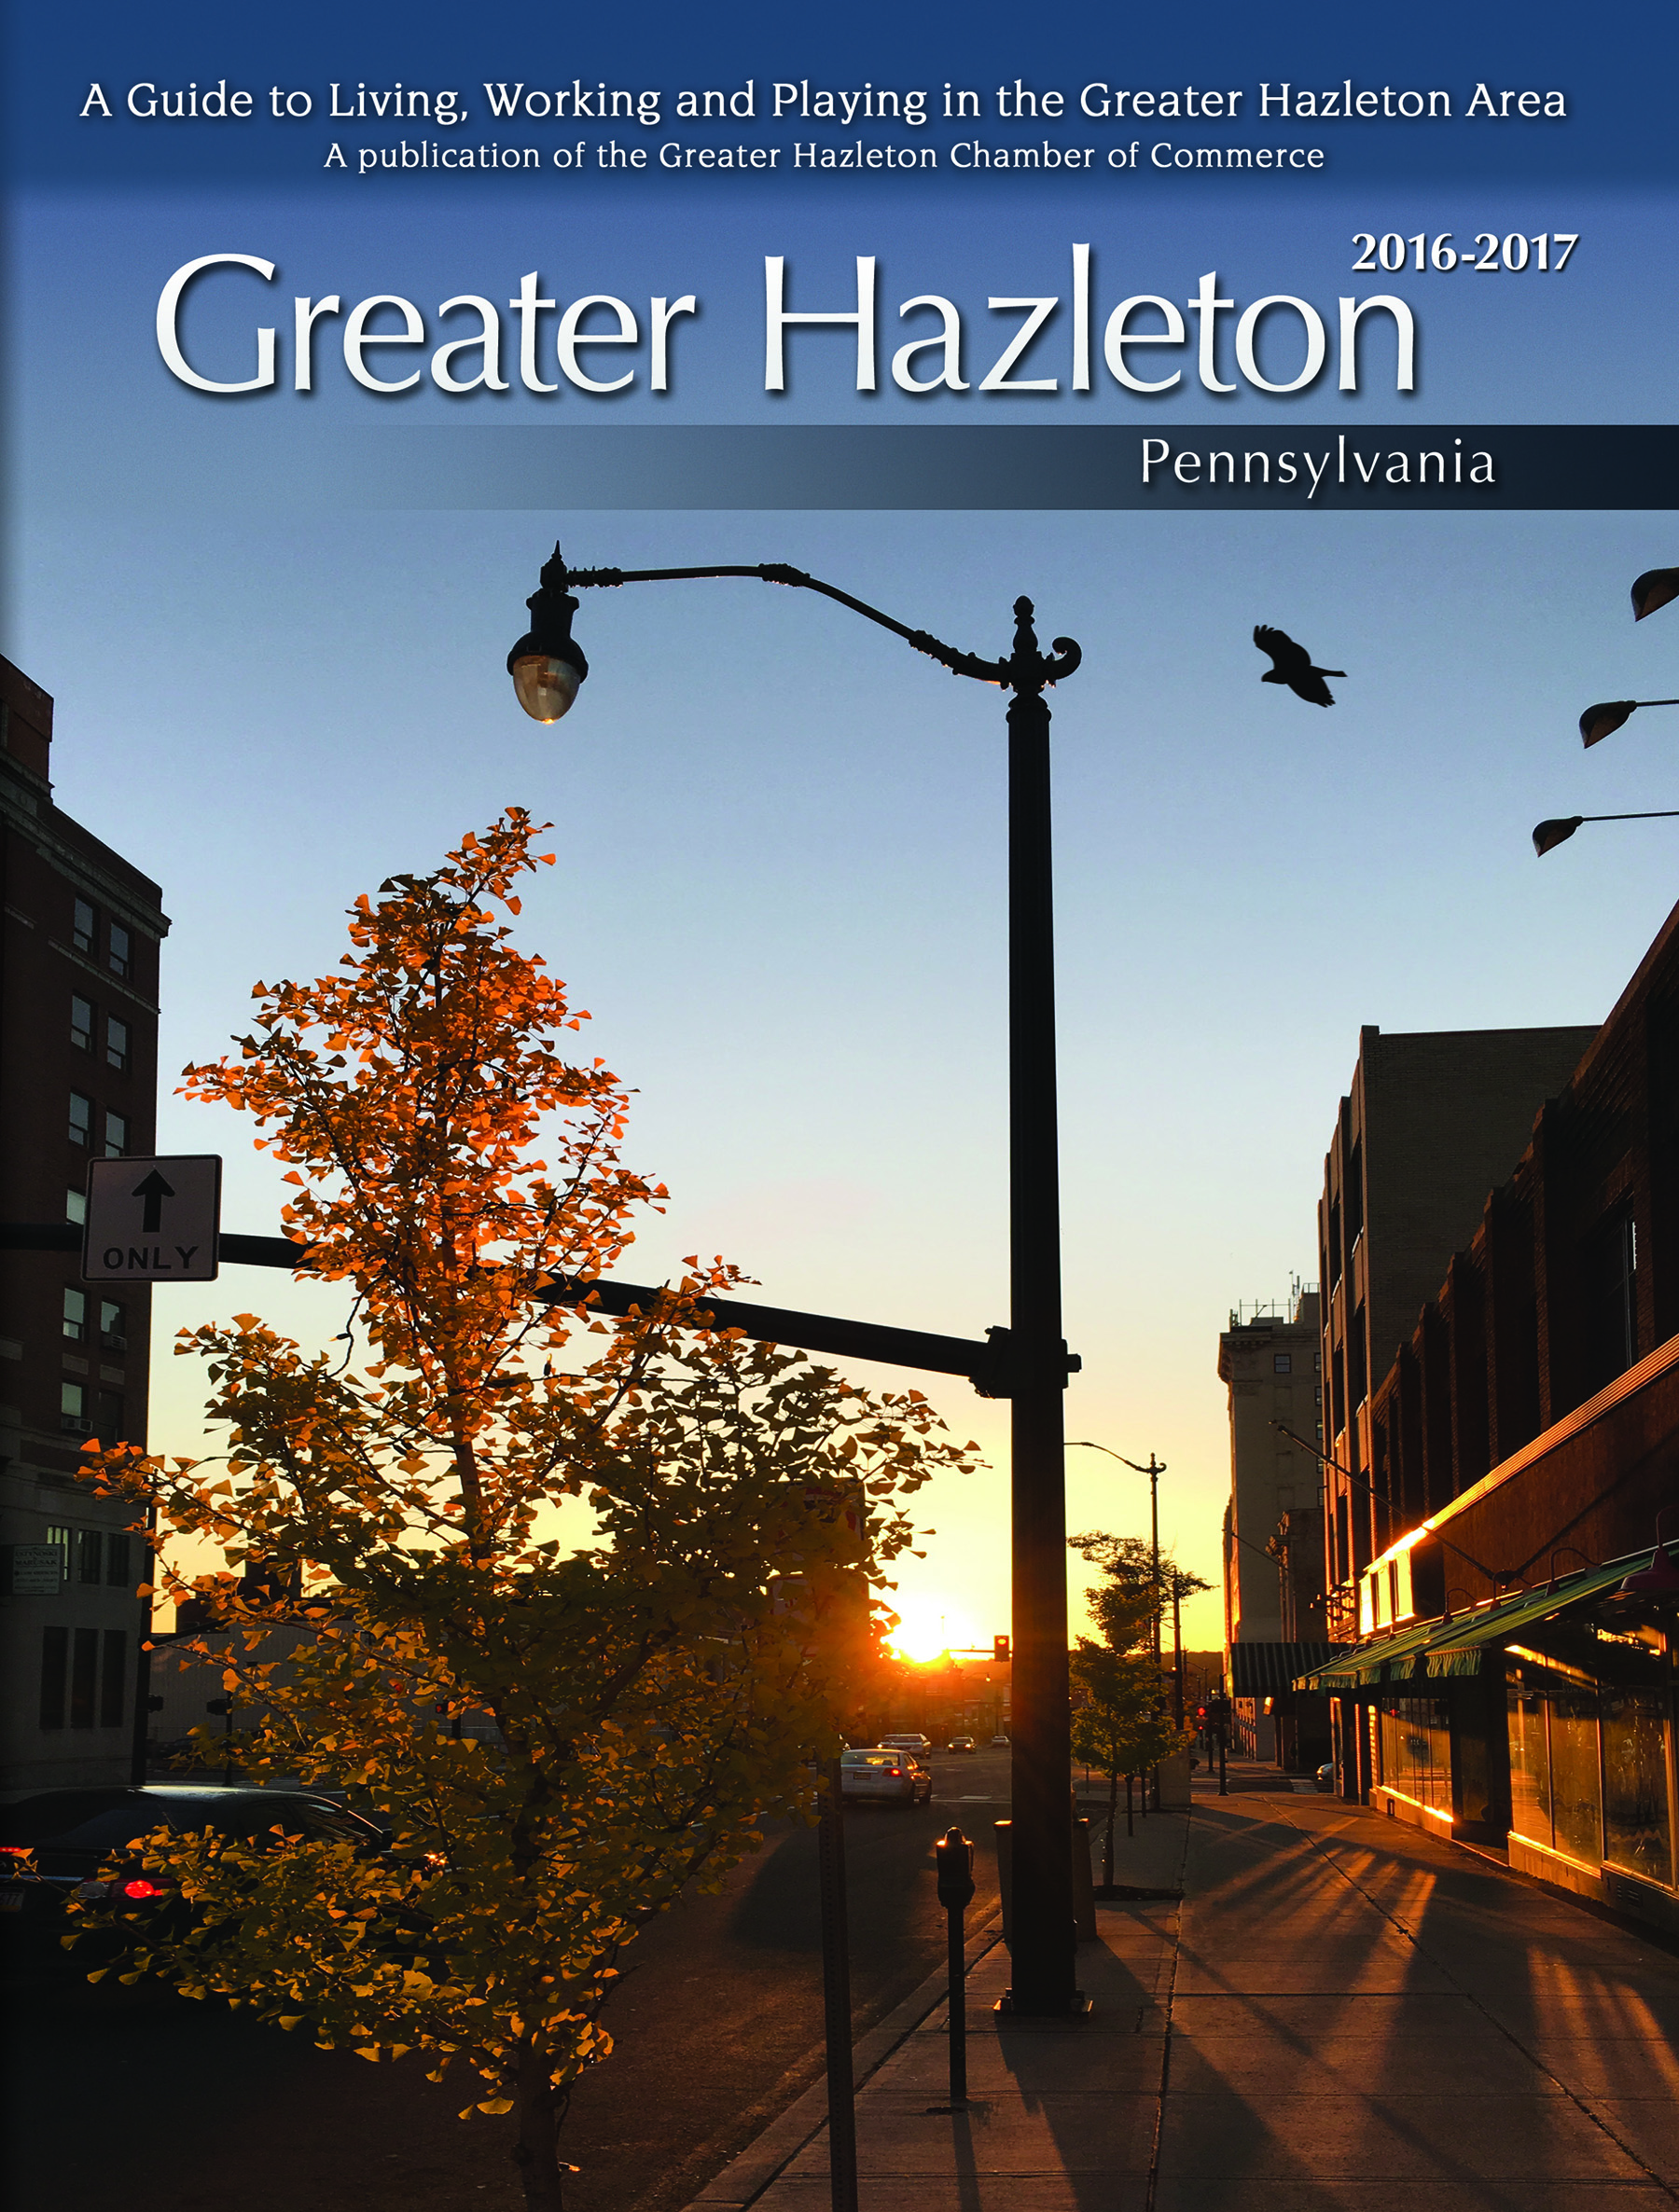 Greater Hazleton Chamber of Commerce Image Book 2016-2017